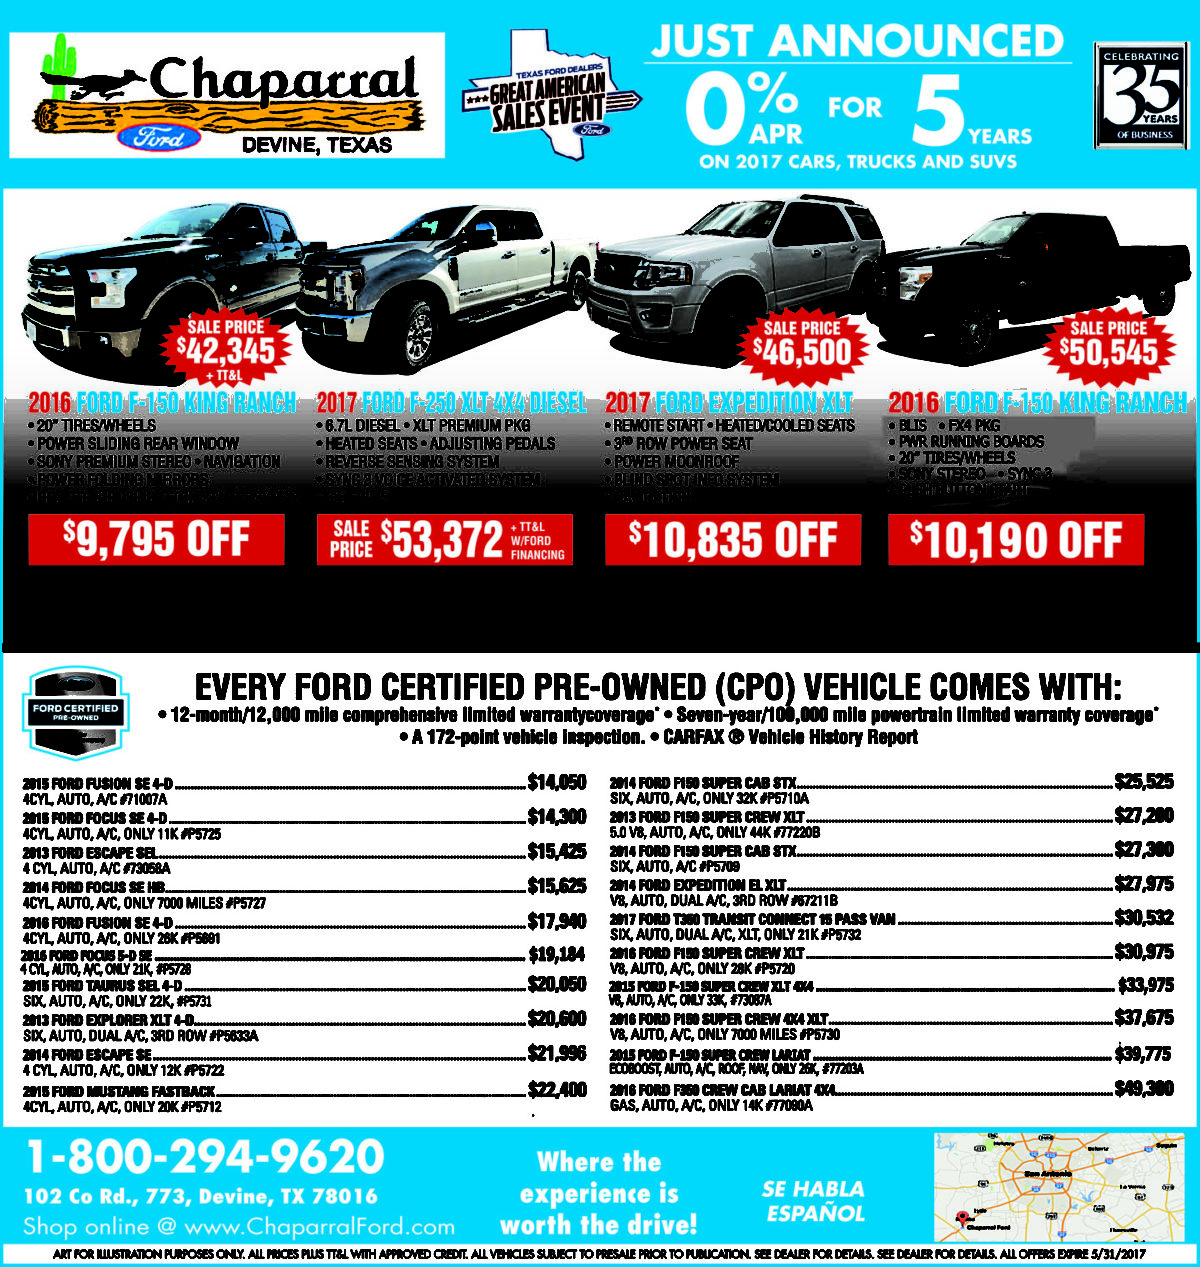 Chaparral Ford deals for the week of 5-24-17